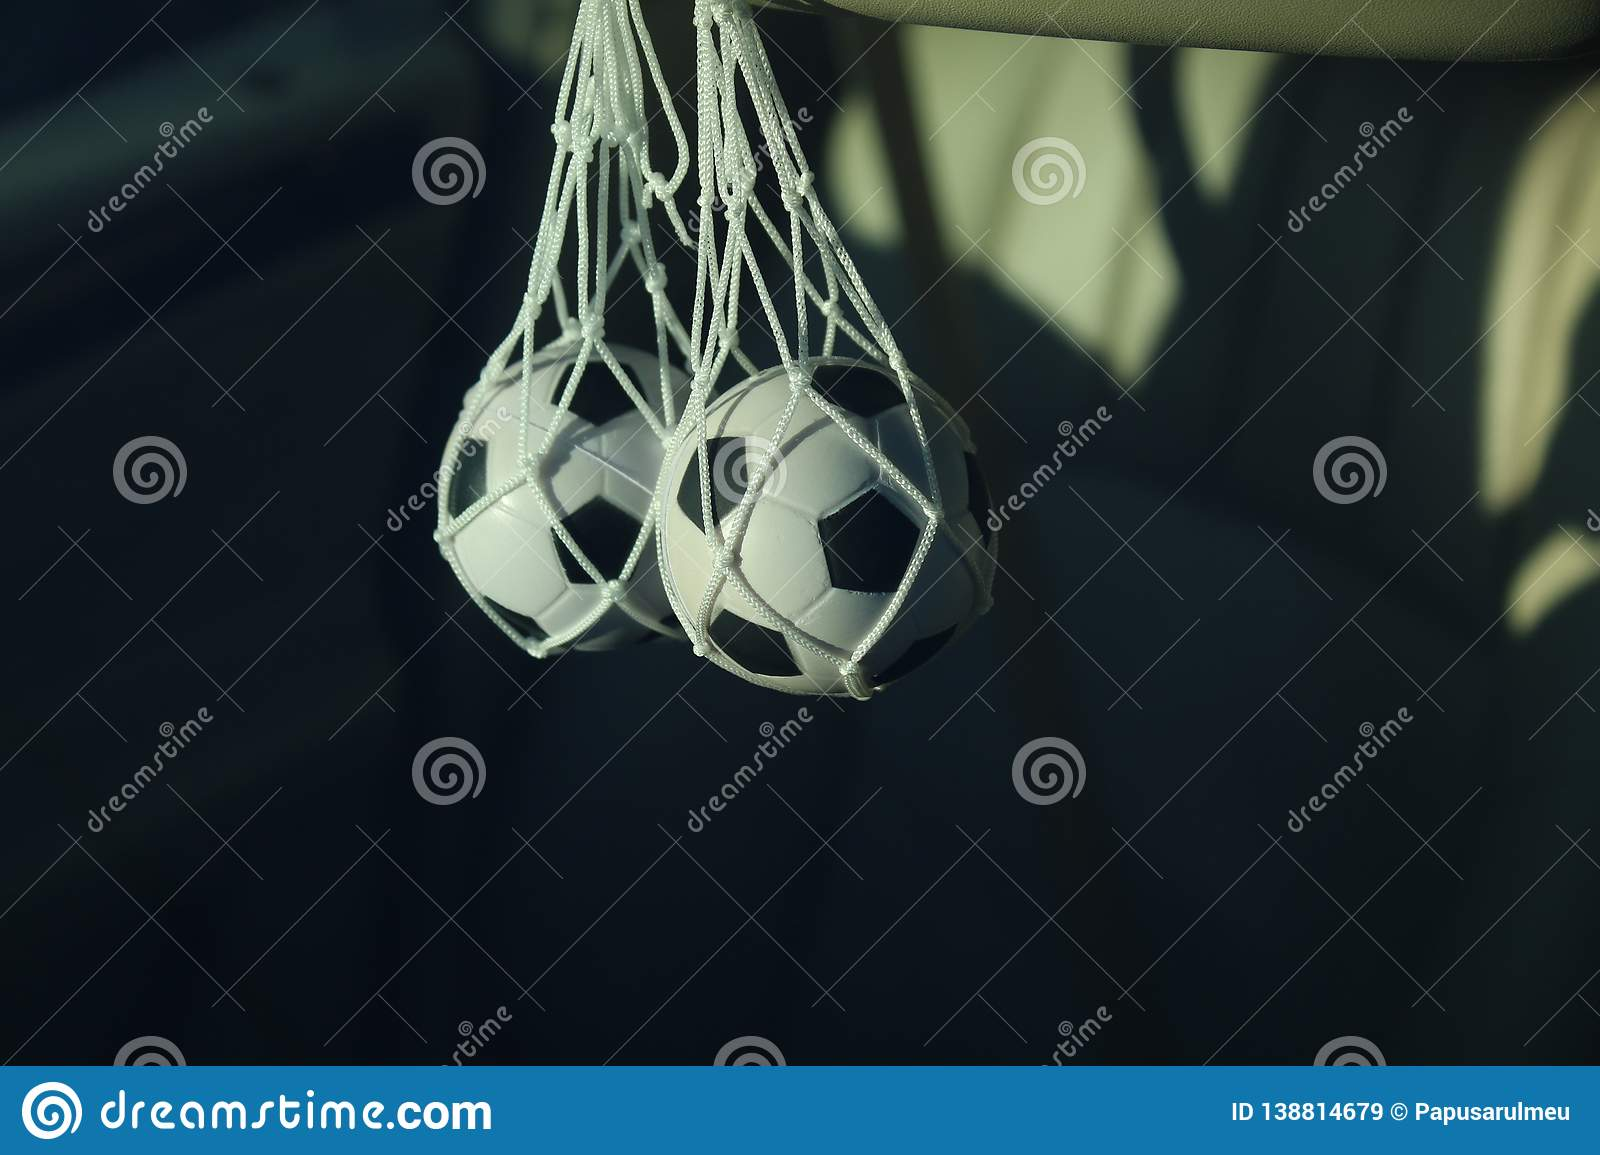 Accessory for the car in the form of a soccer ball